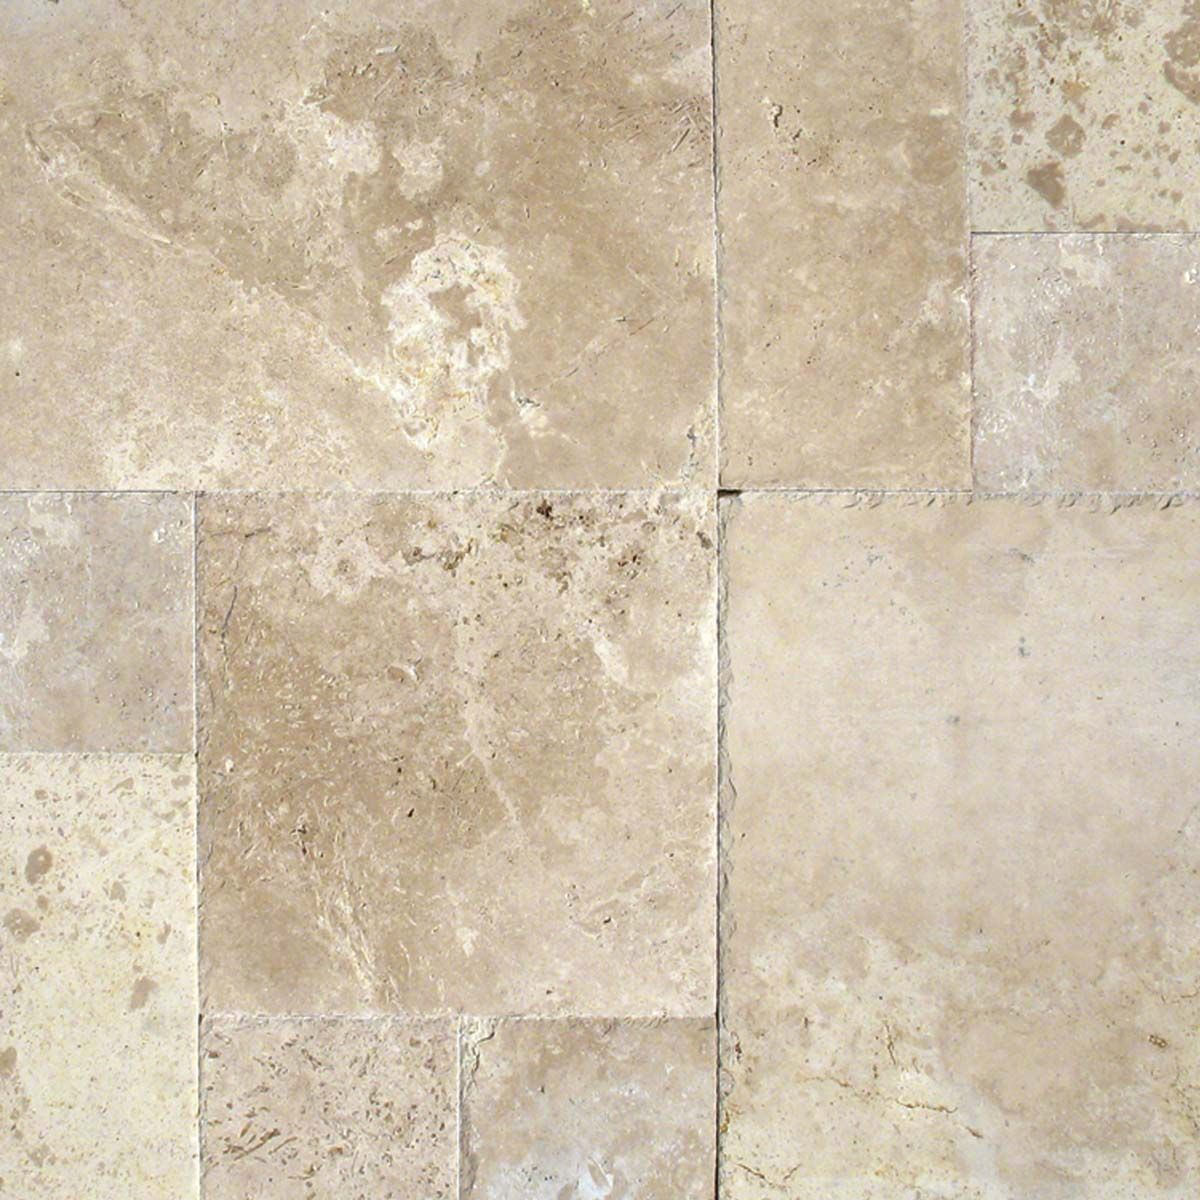 Tuscany Storm Travertine Tile Travertine Travertine Floor Tile